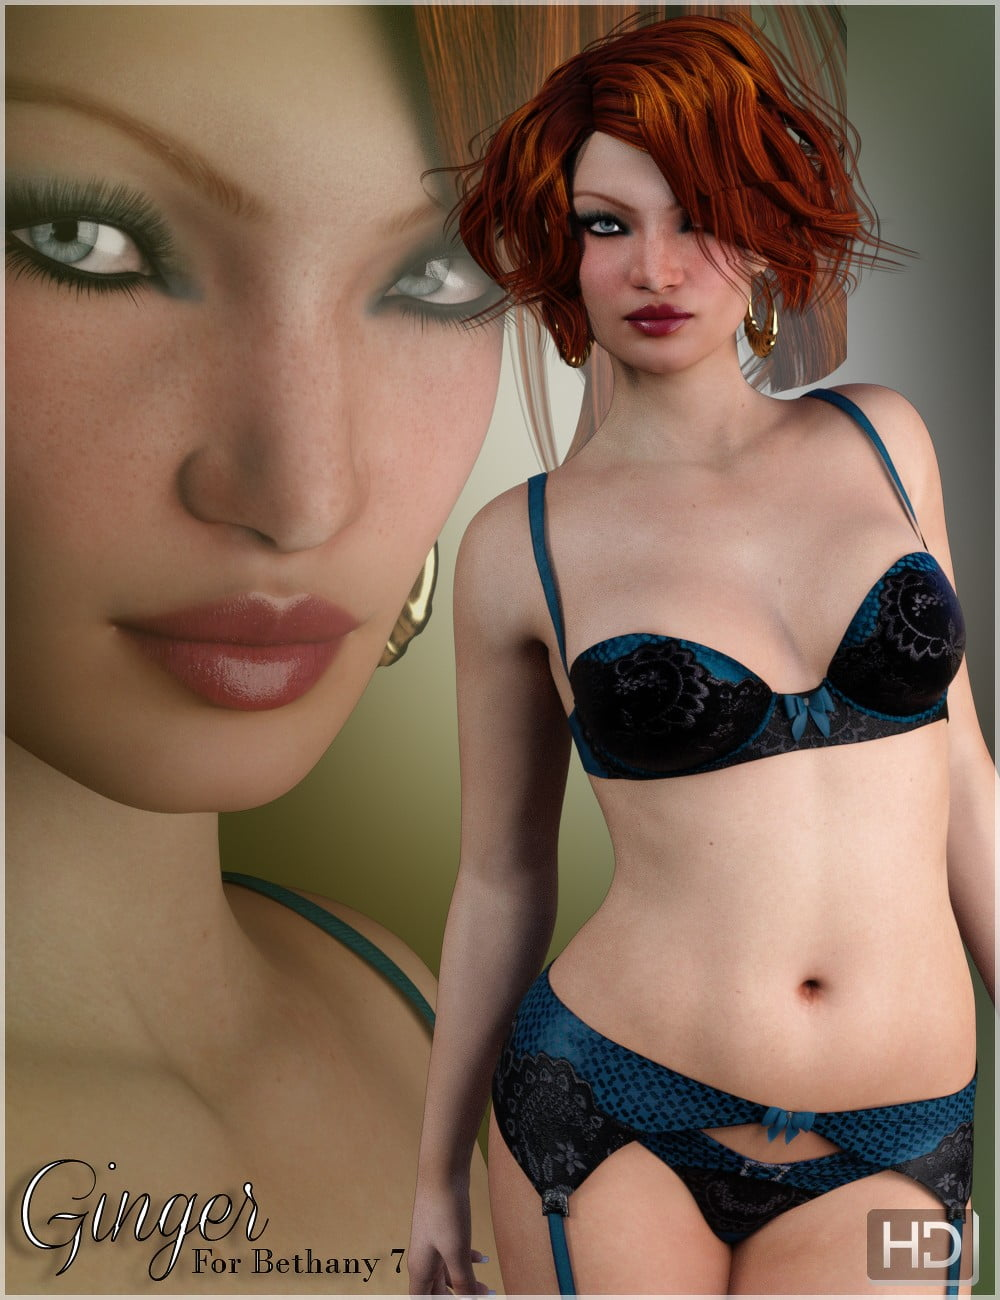 00-main-ginger-for-bethany-7-hd-daz3d